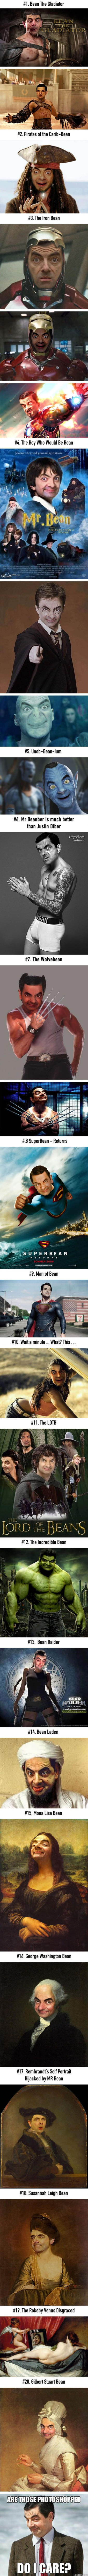 Everything looks better replaced to Mr Bean